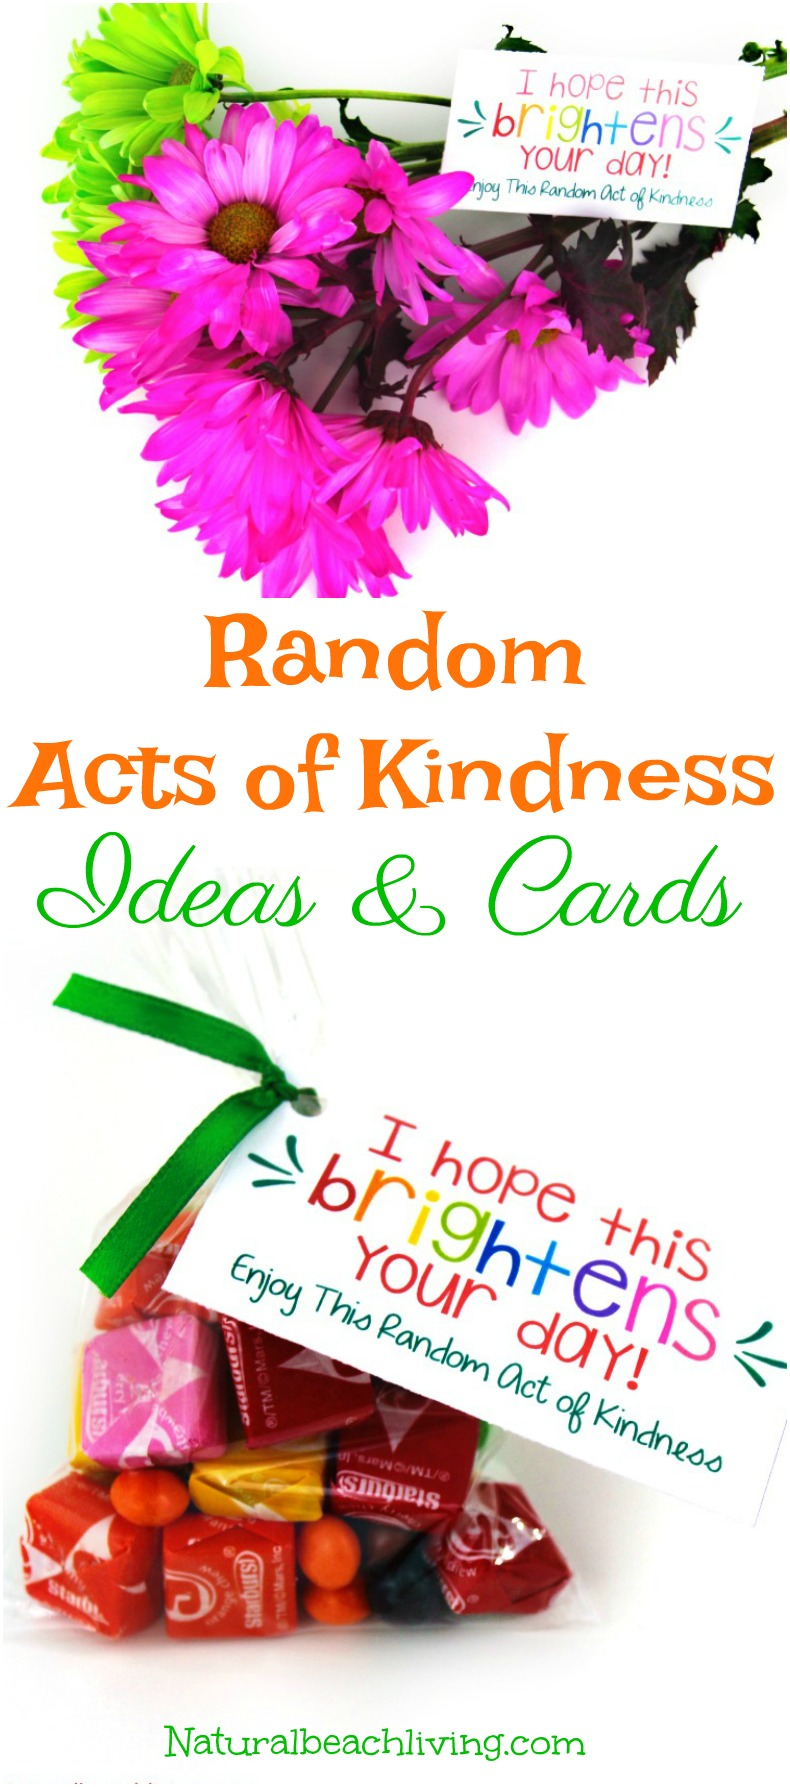 graphic regarding Kindness Cards Printable known as The Suitable Random Functions of Kindness Printable Playing cards Totally free